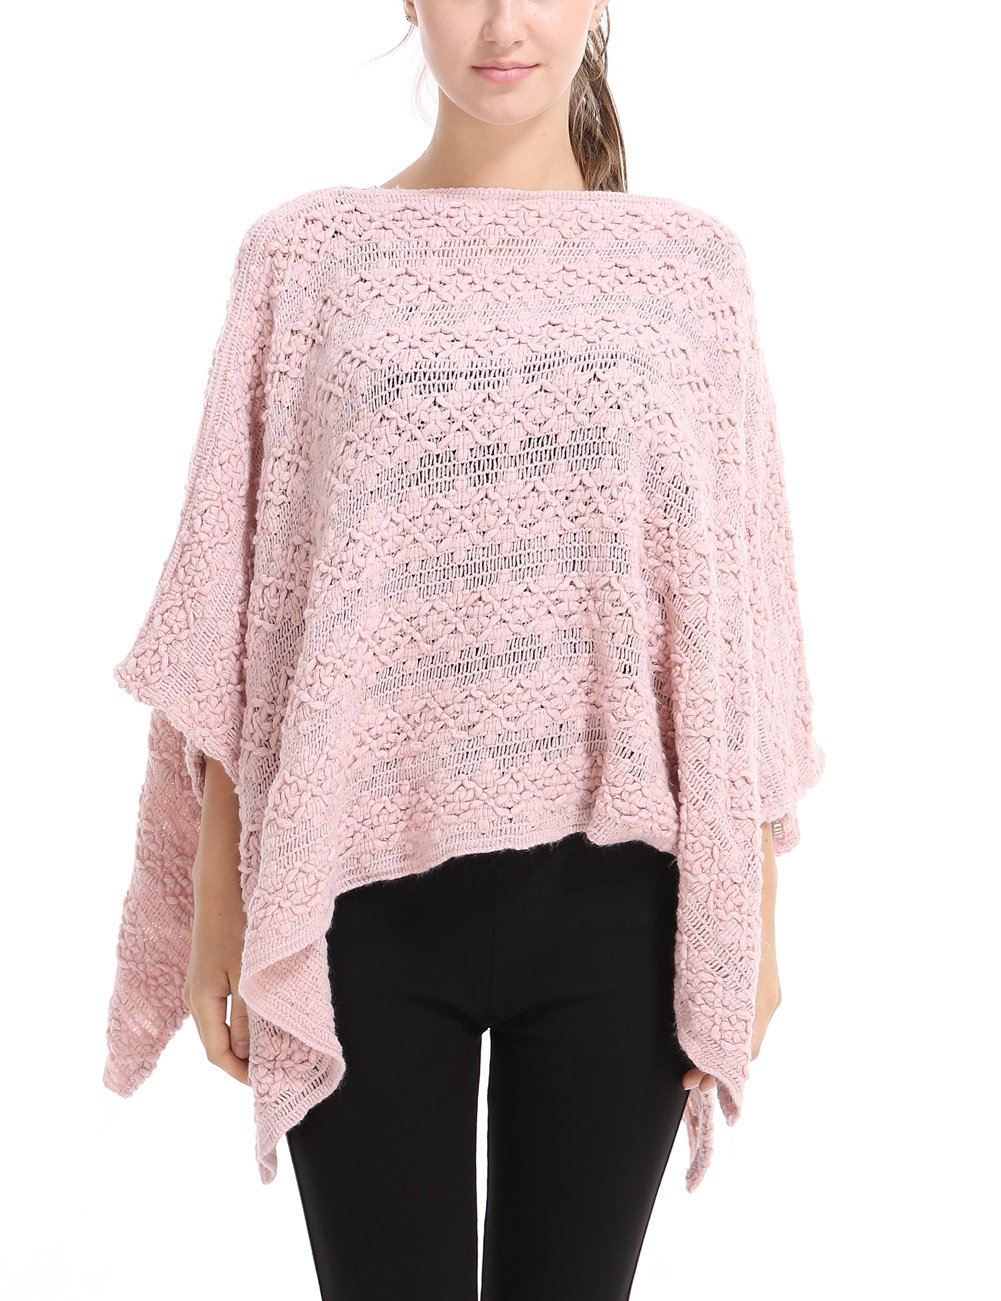 Ferand Casual Batwing Sleeve Floral Crochet Knit Poncho Cape Pullover for Women One Size Beige